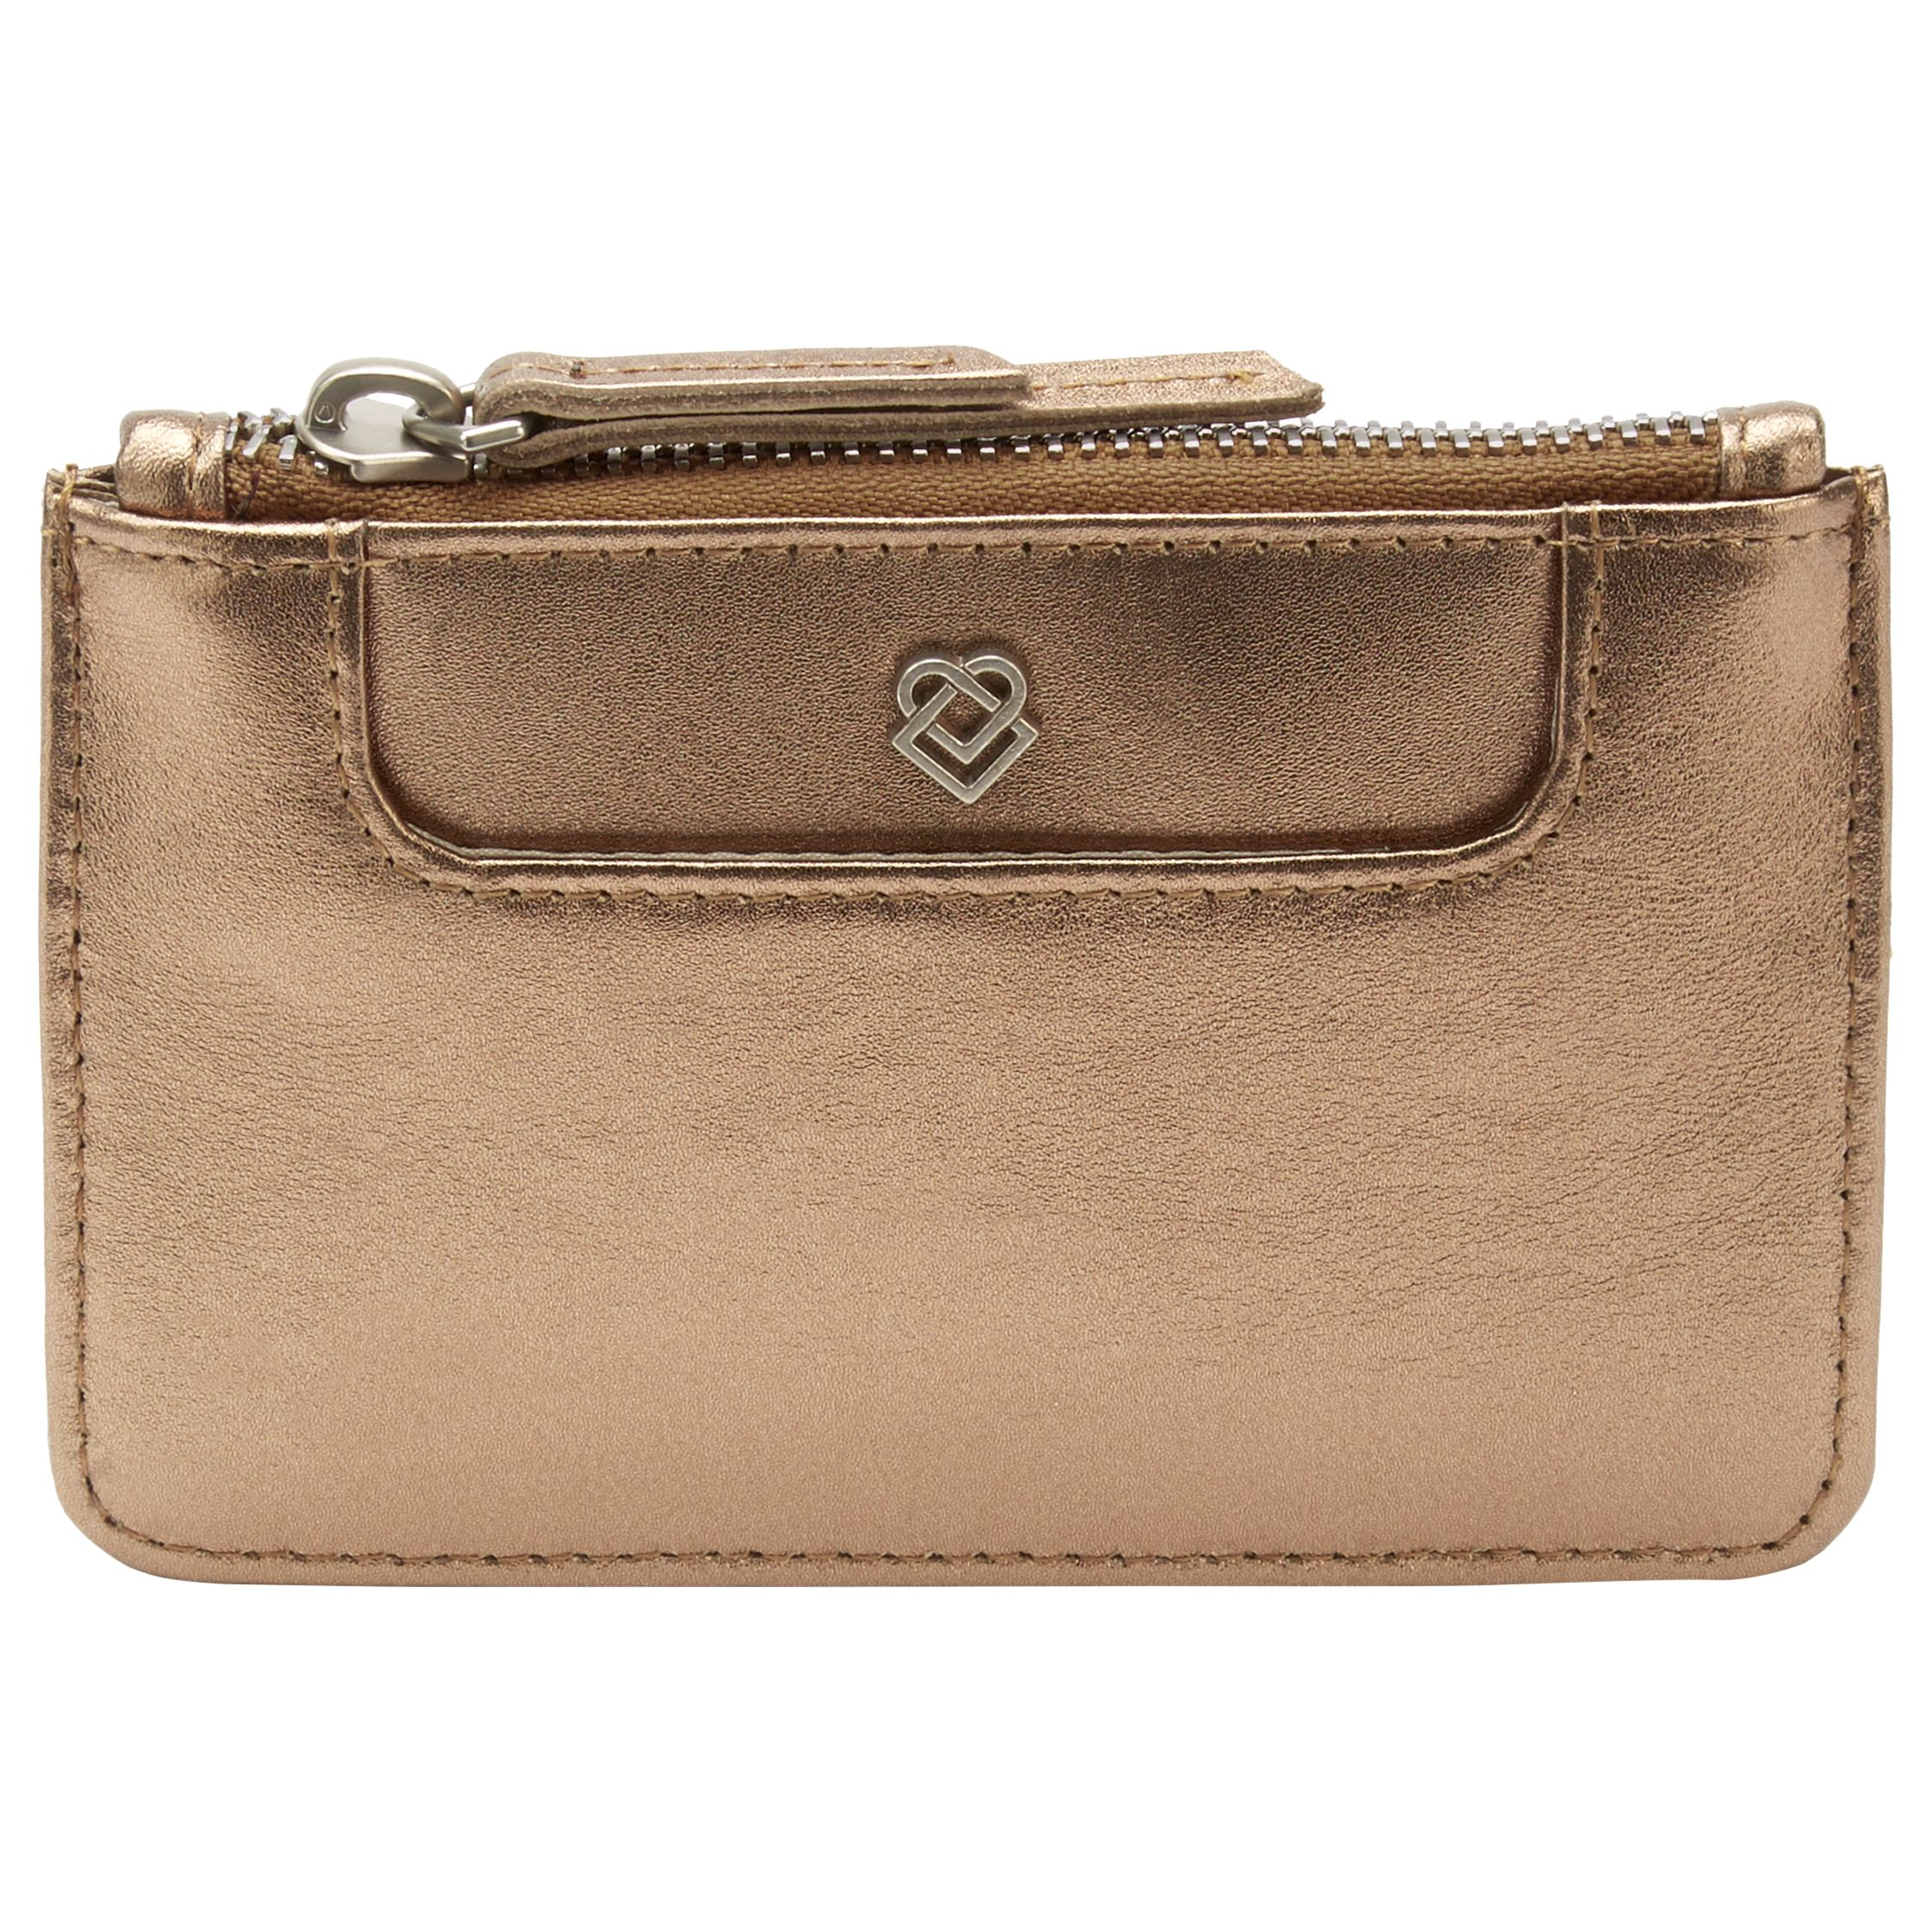 Liebeskind Liebeskind Matti Leather Card Holder, Bronze